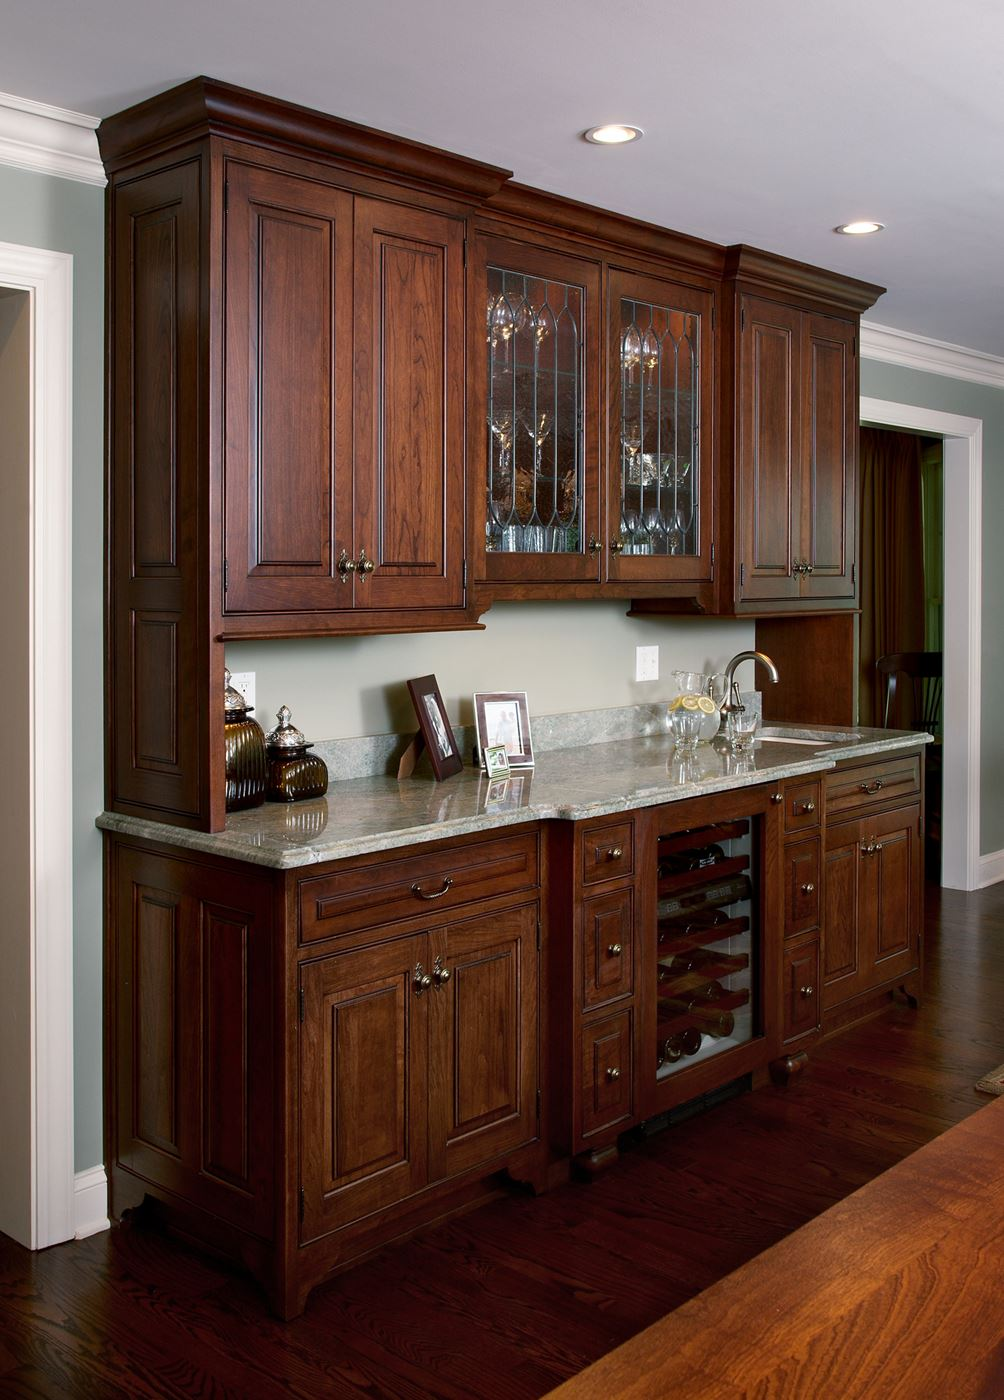 Wet bar gallery custom wood products handcrafted cabinets - Wet bar cabinets ...